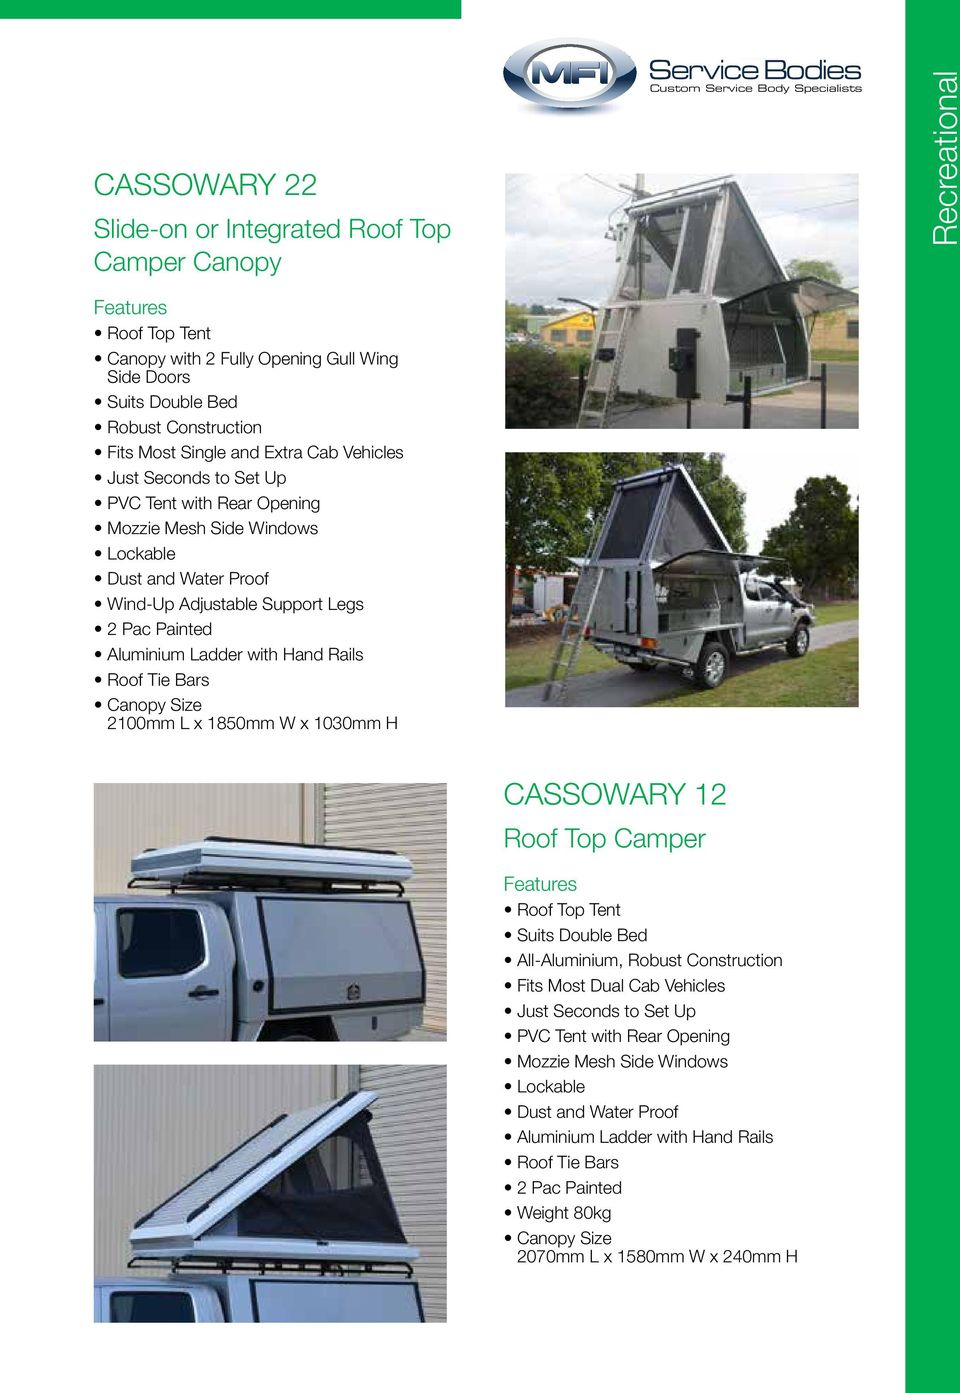 Painted Aluminium Ladder with Hand Rails Roof Tie Bars Canopy Size 2100mm L x 1850mm W x 1030mm H CASSOWARY 12 Roof Top Camper Features Roof Top Tent Suits Double Bed All-Aluminium, Robust